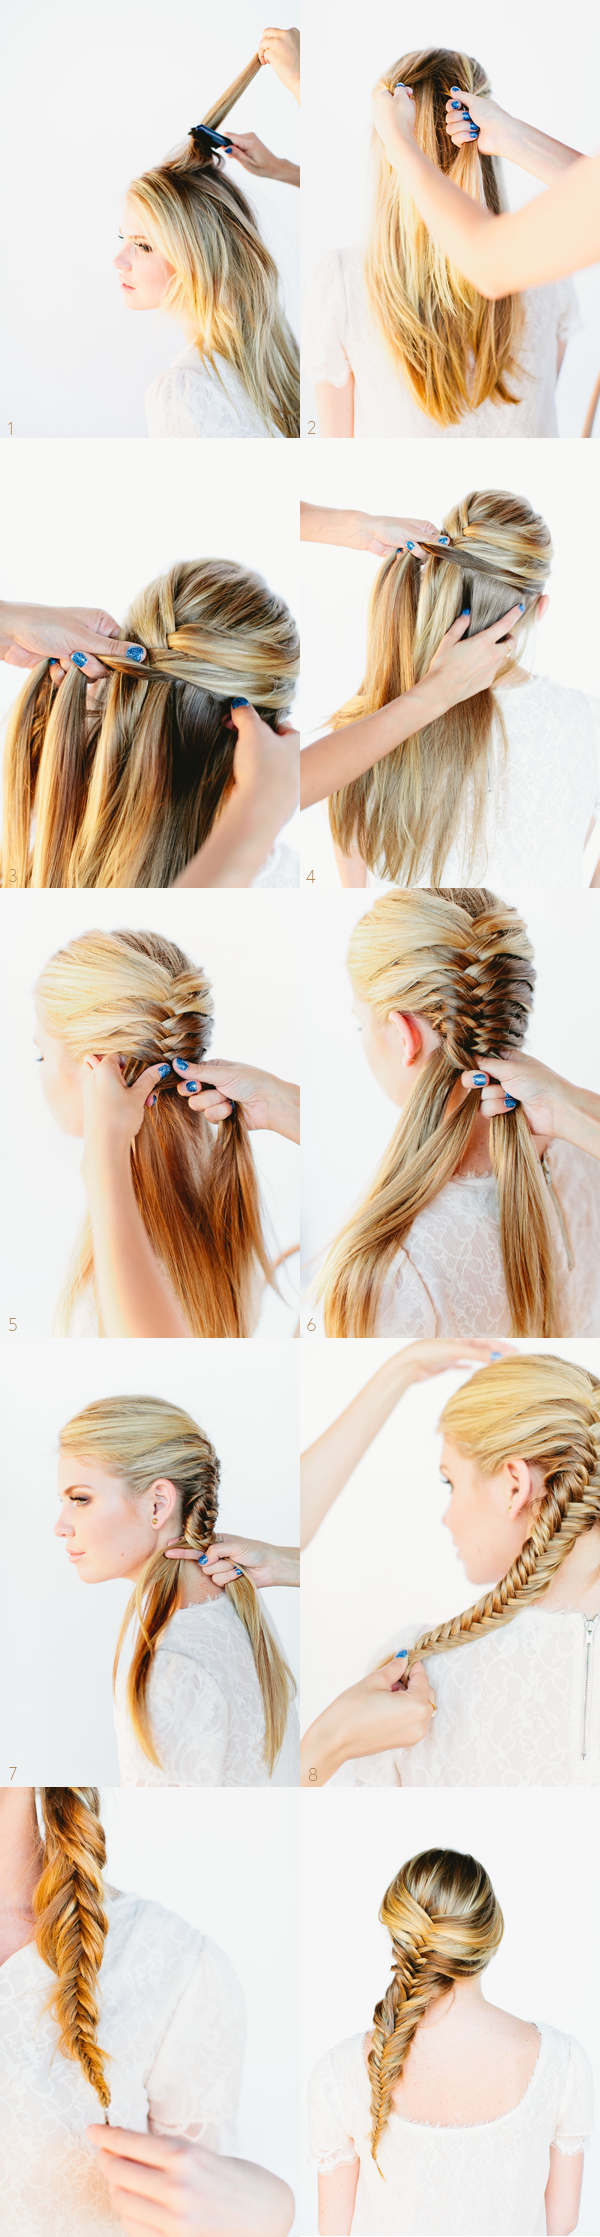 fishtail braid wedding hairstyles for long hair tutorial... Along ...